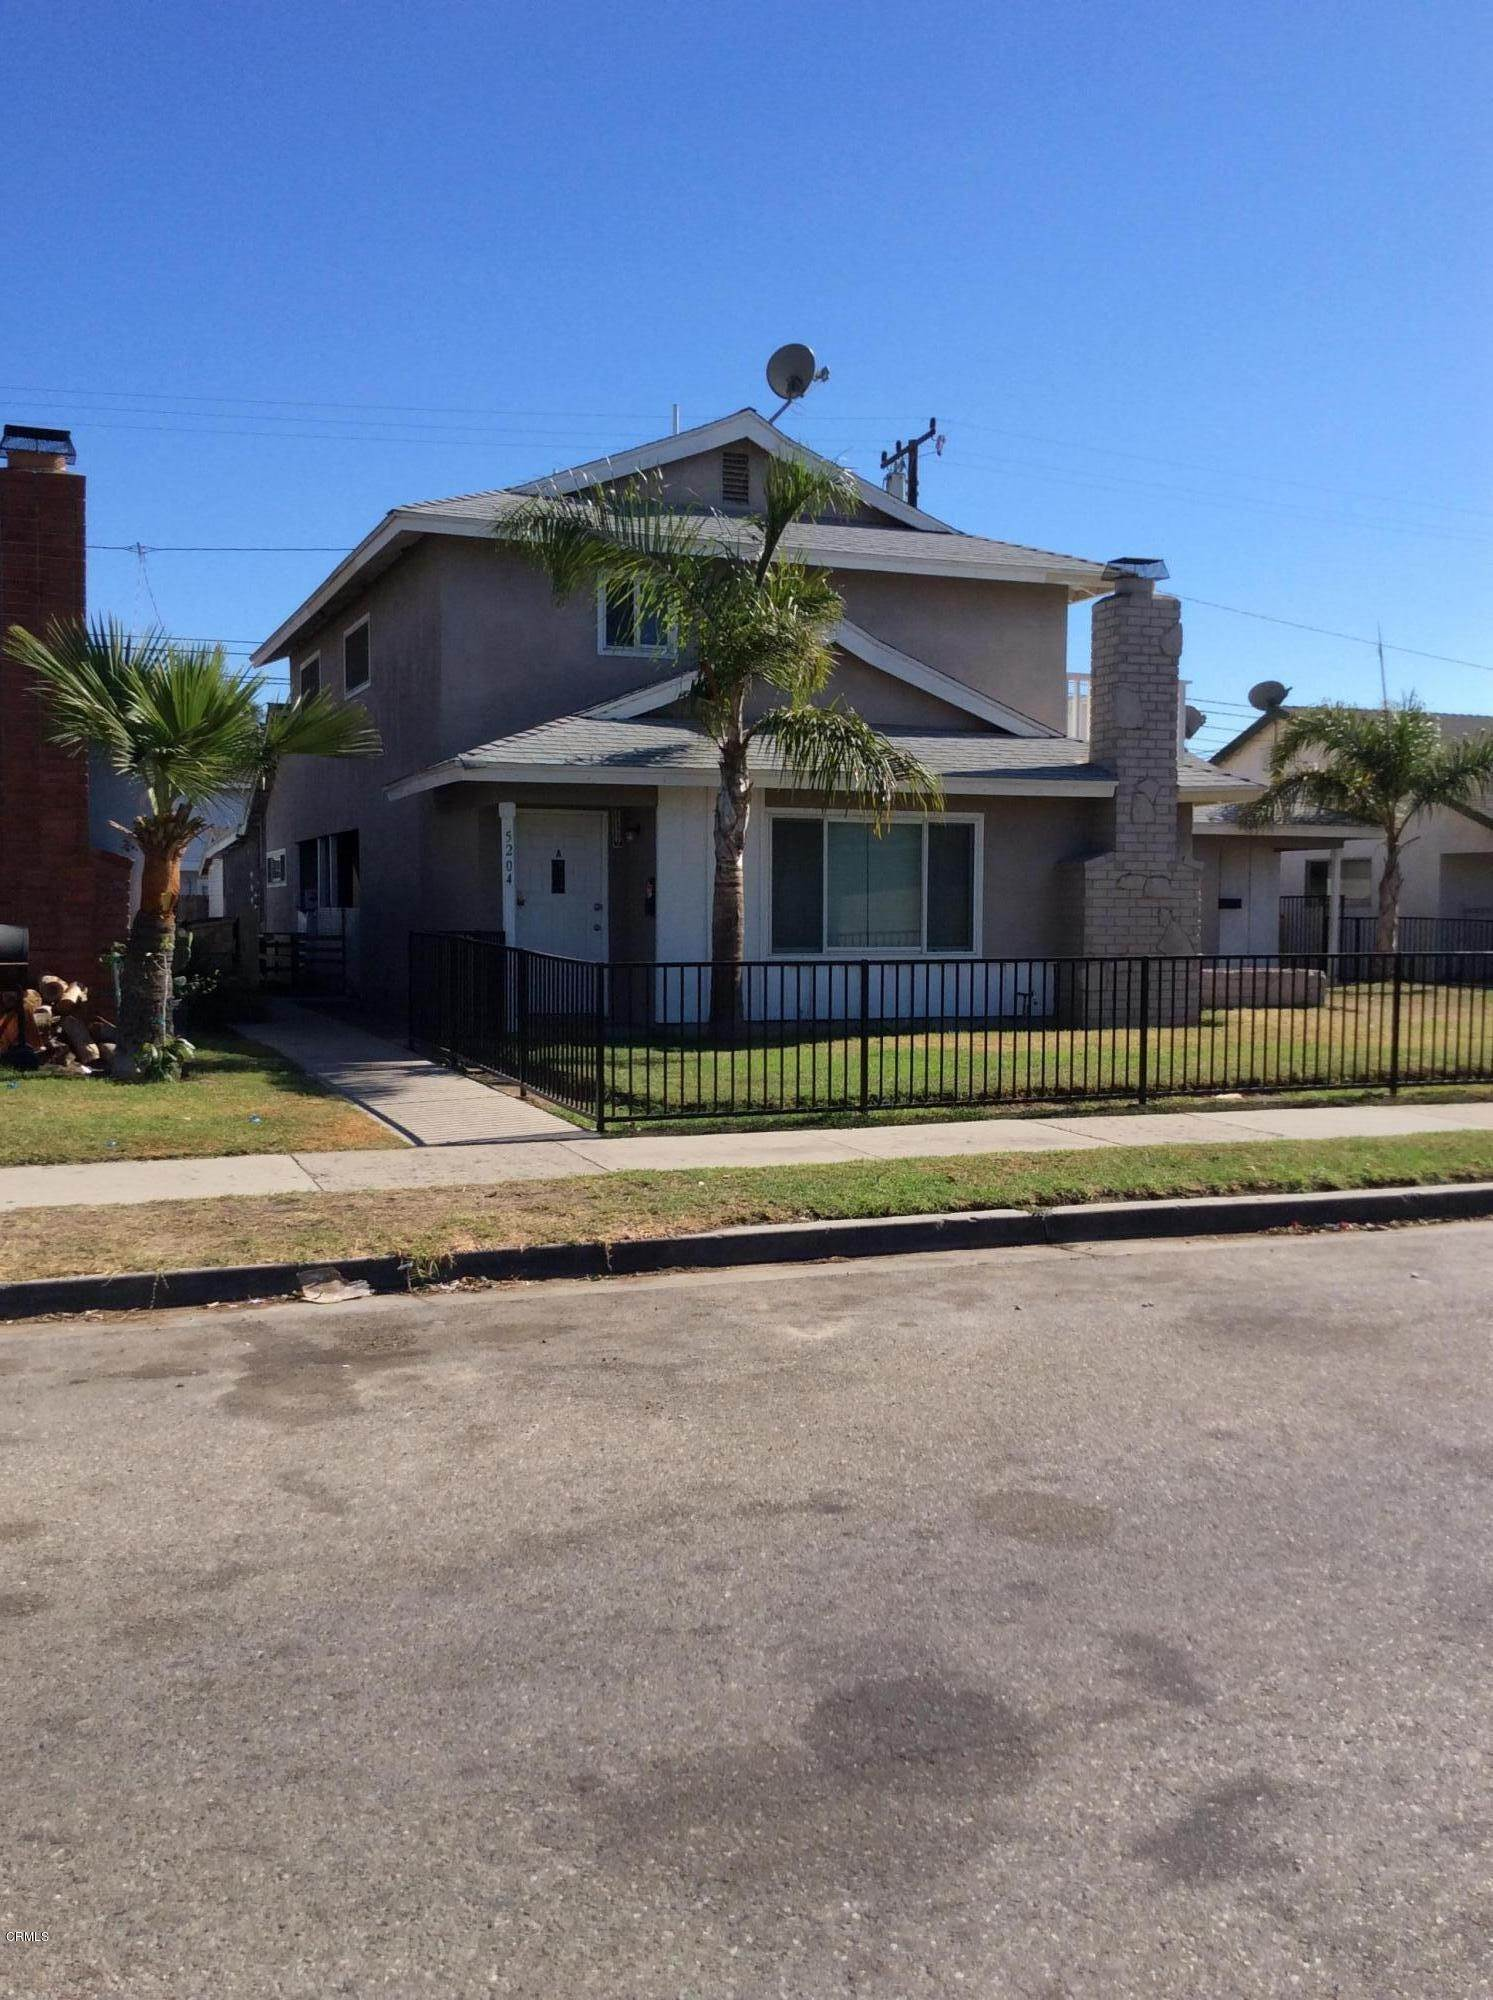 Triplex for Sale at 5204 Charles Street Oxnard, California 93033 United States